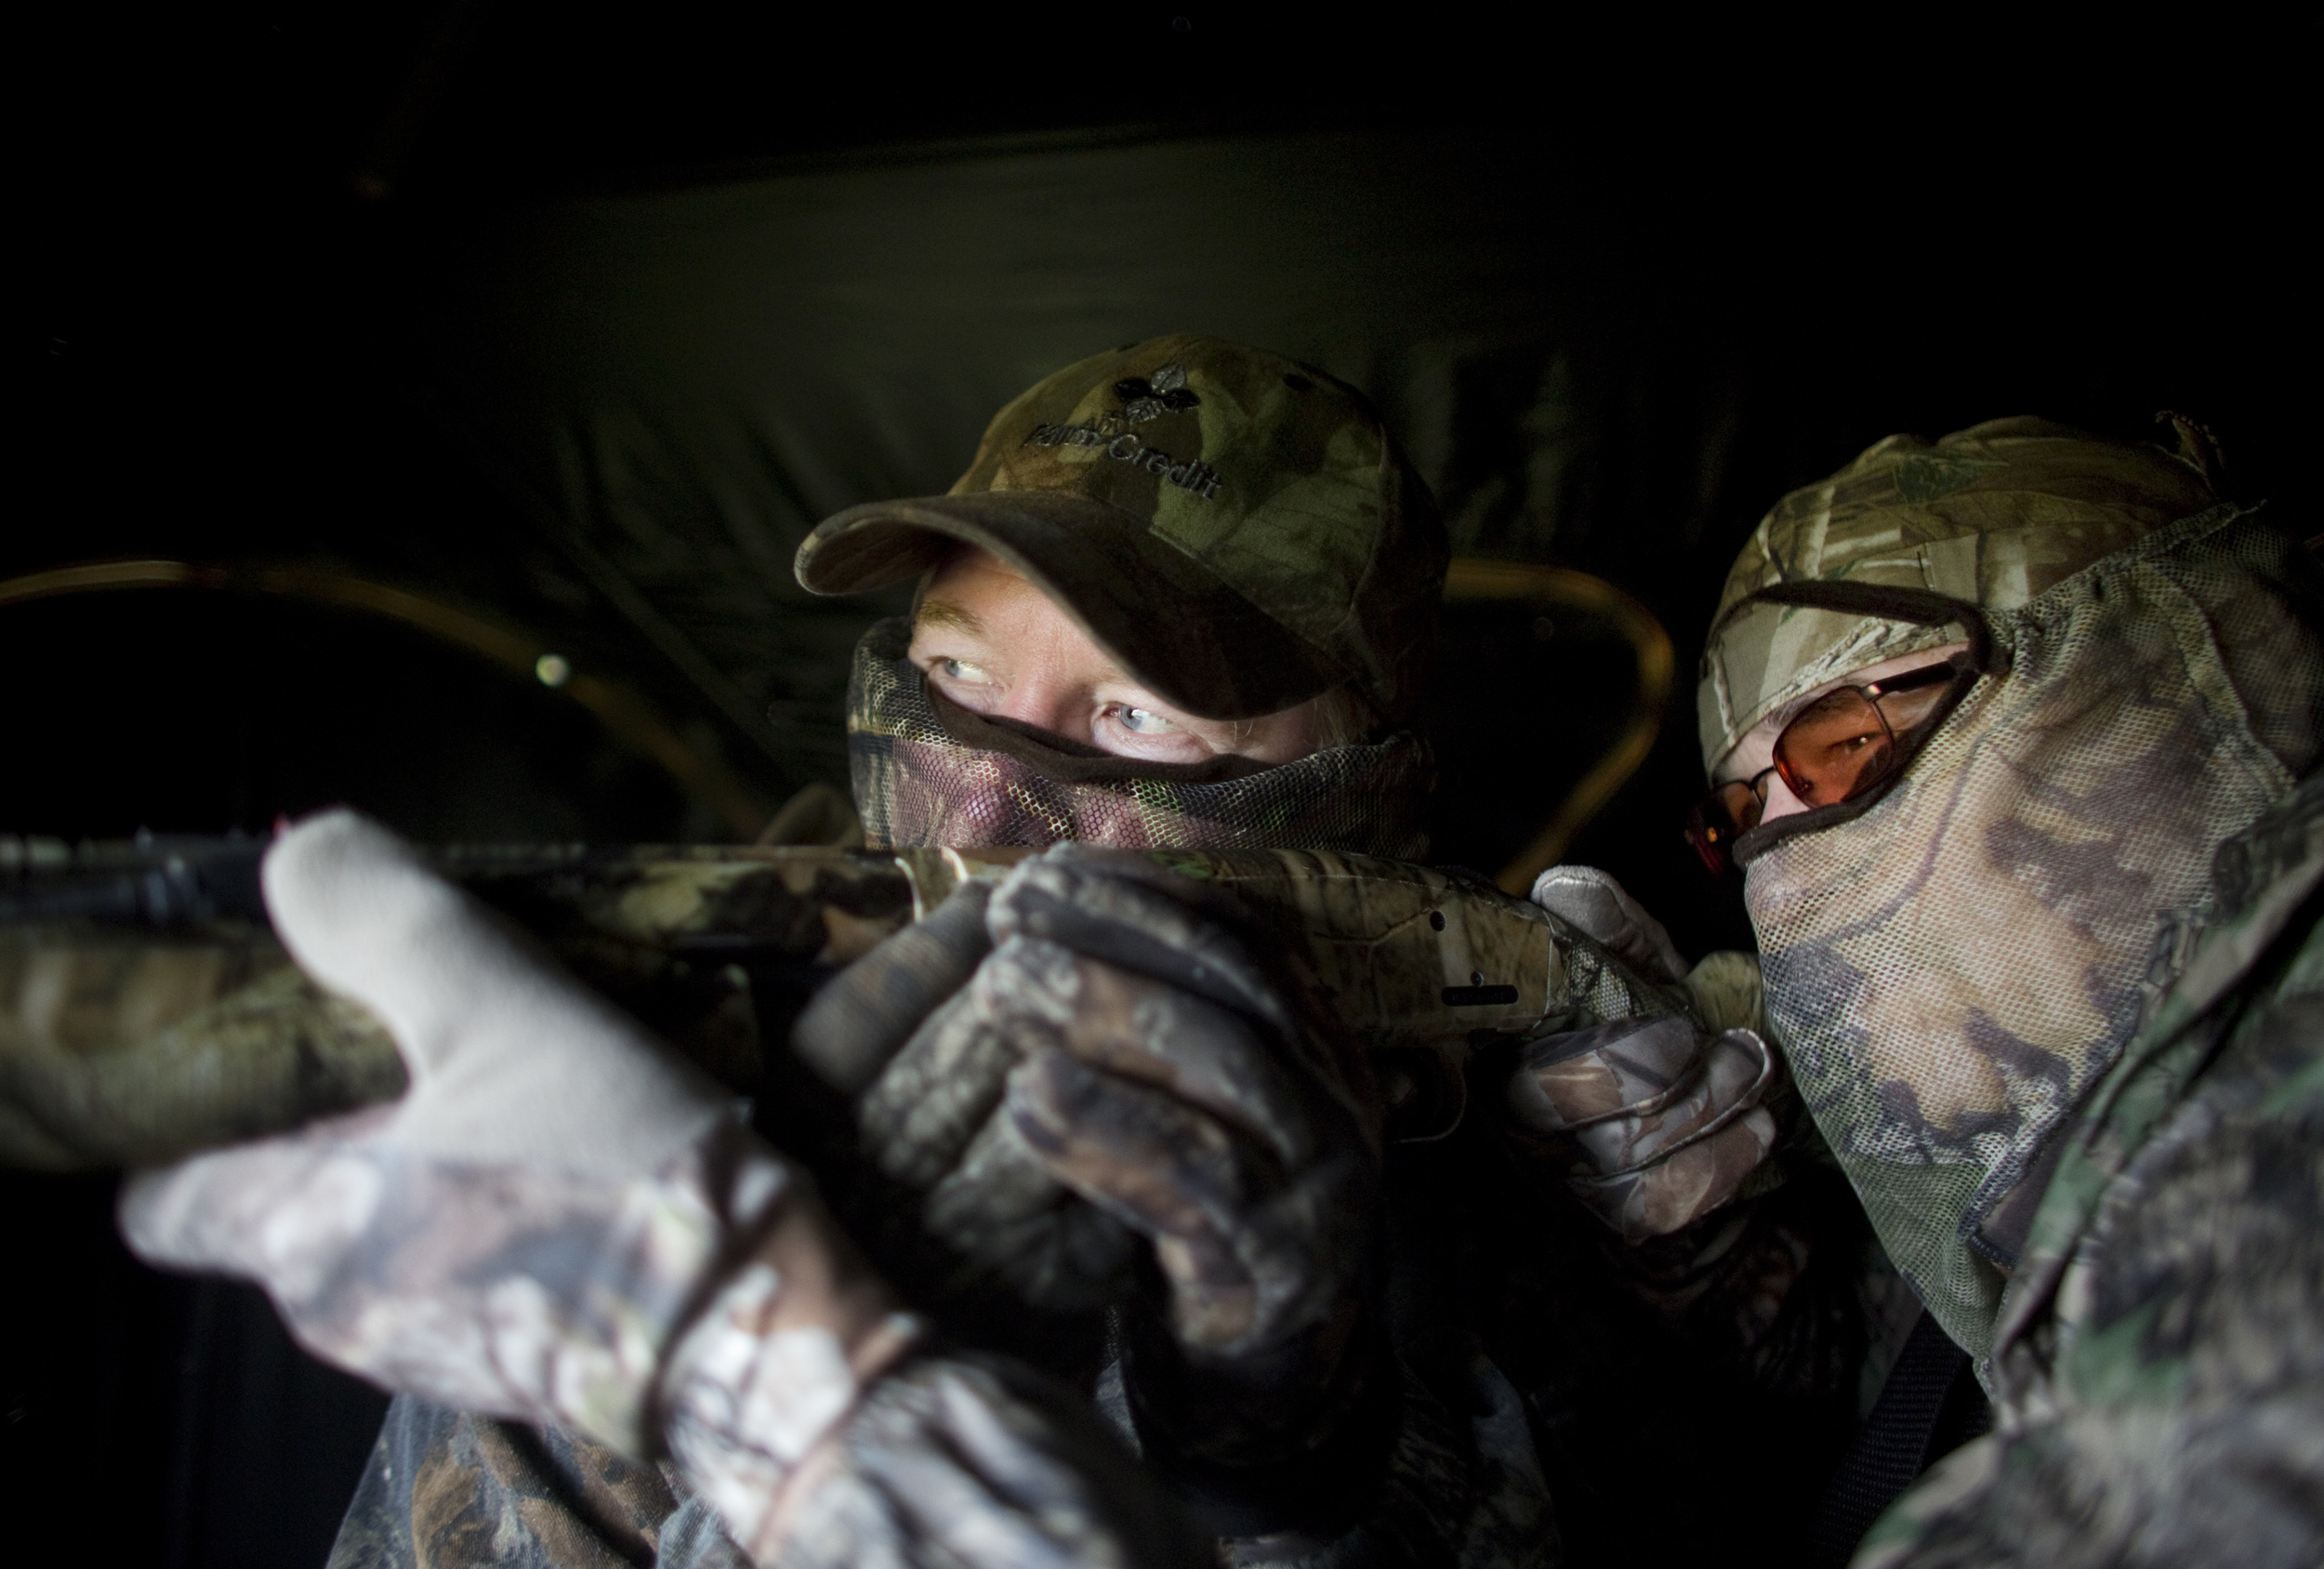 Tommy Meador, left, one of the two sighted guides, looks down the barrel of Mike Doyle's gun and helps point the Mossberg 500 shotgun towards the decoys as Doyle, right, also keeps his eyes open as they sit inside of a ground blind practicing during their hunt. Meador has helped out with the hunt for the past six years.